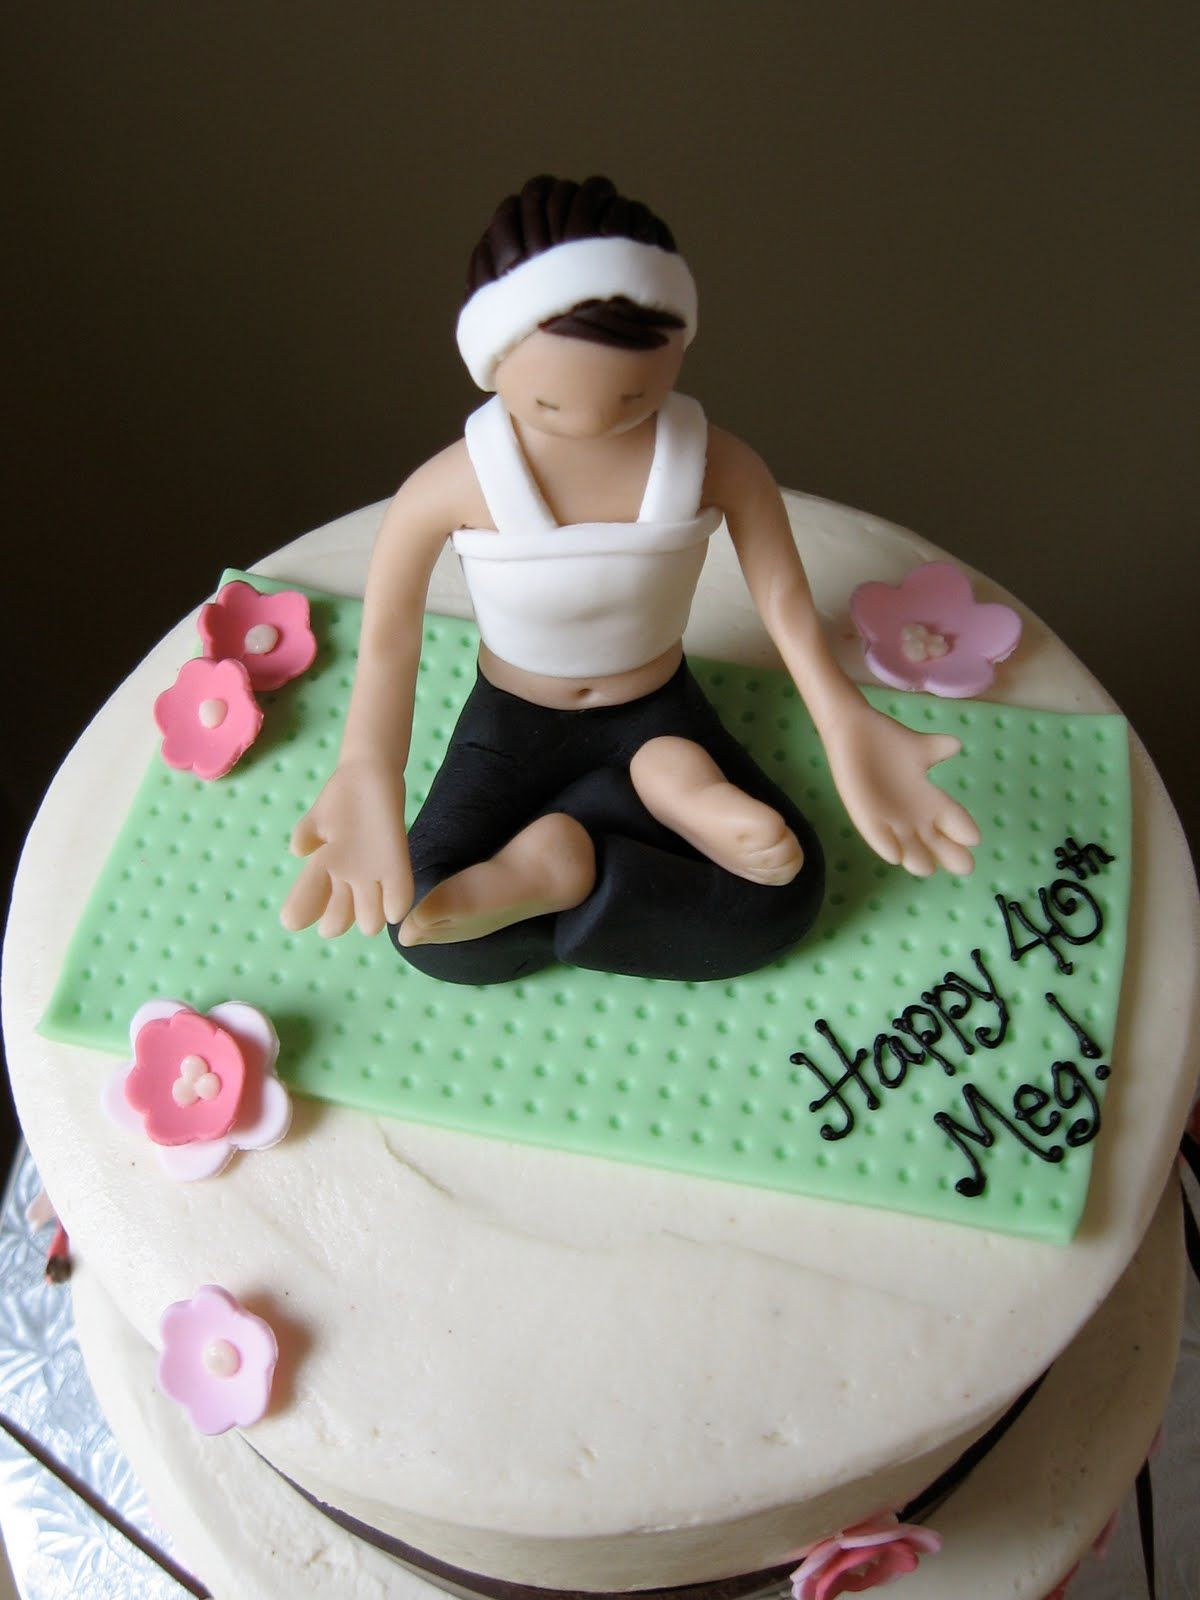 Pin On Yoga Cakes